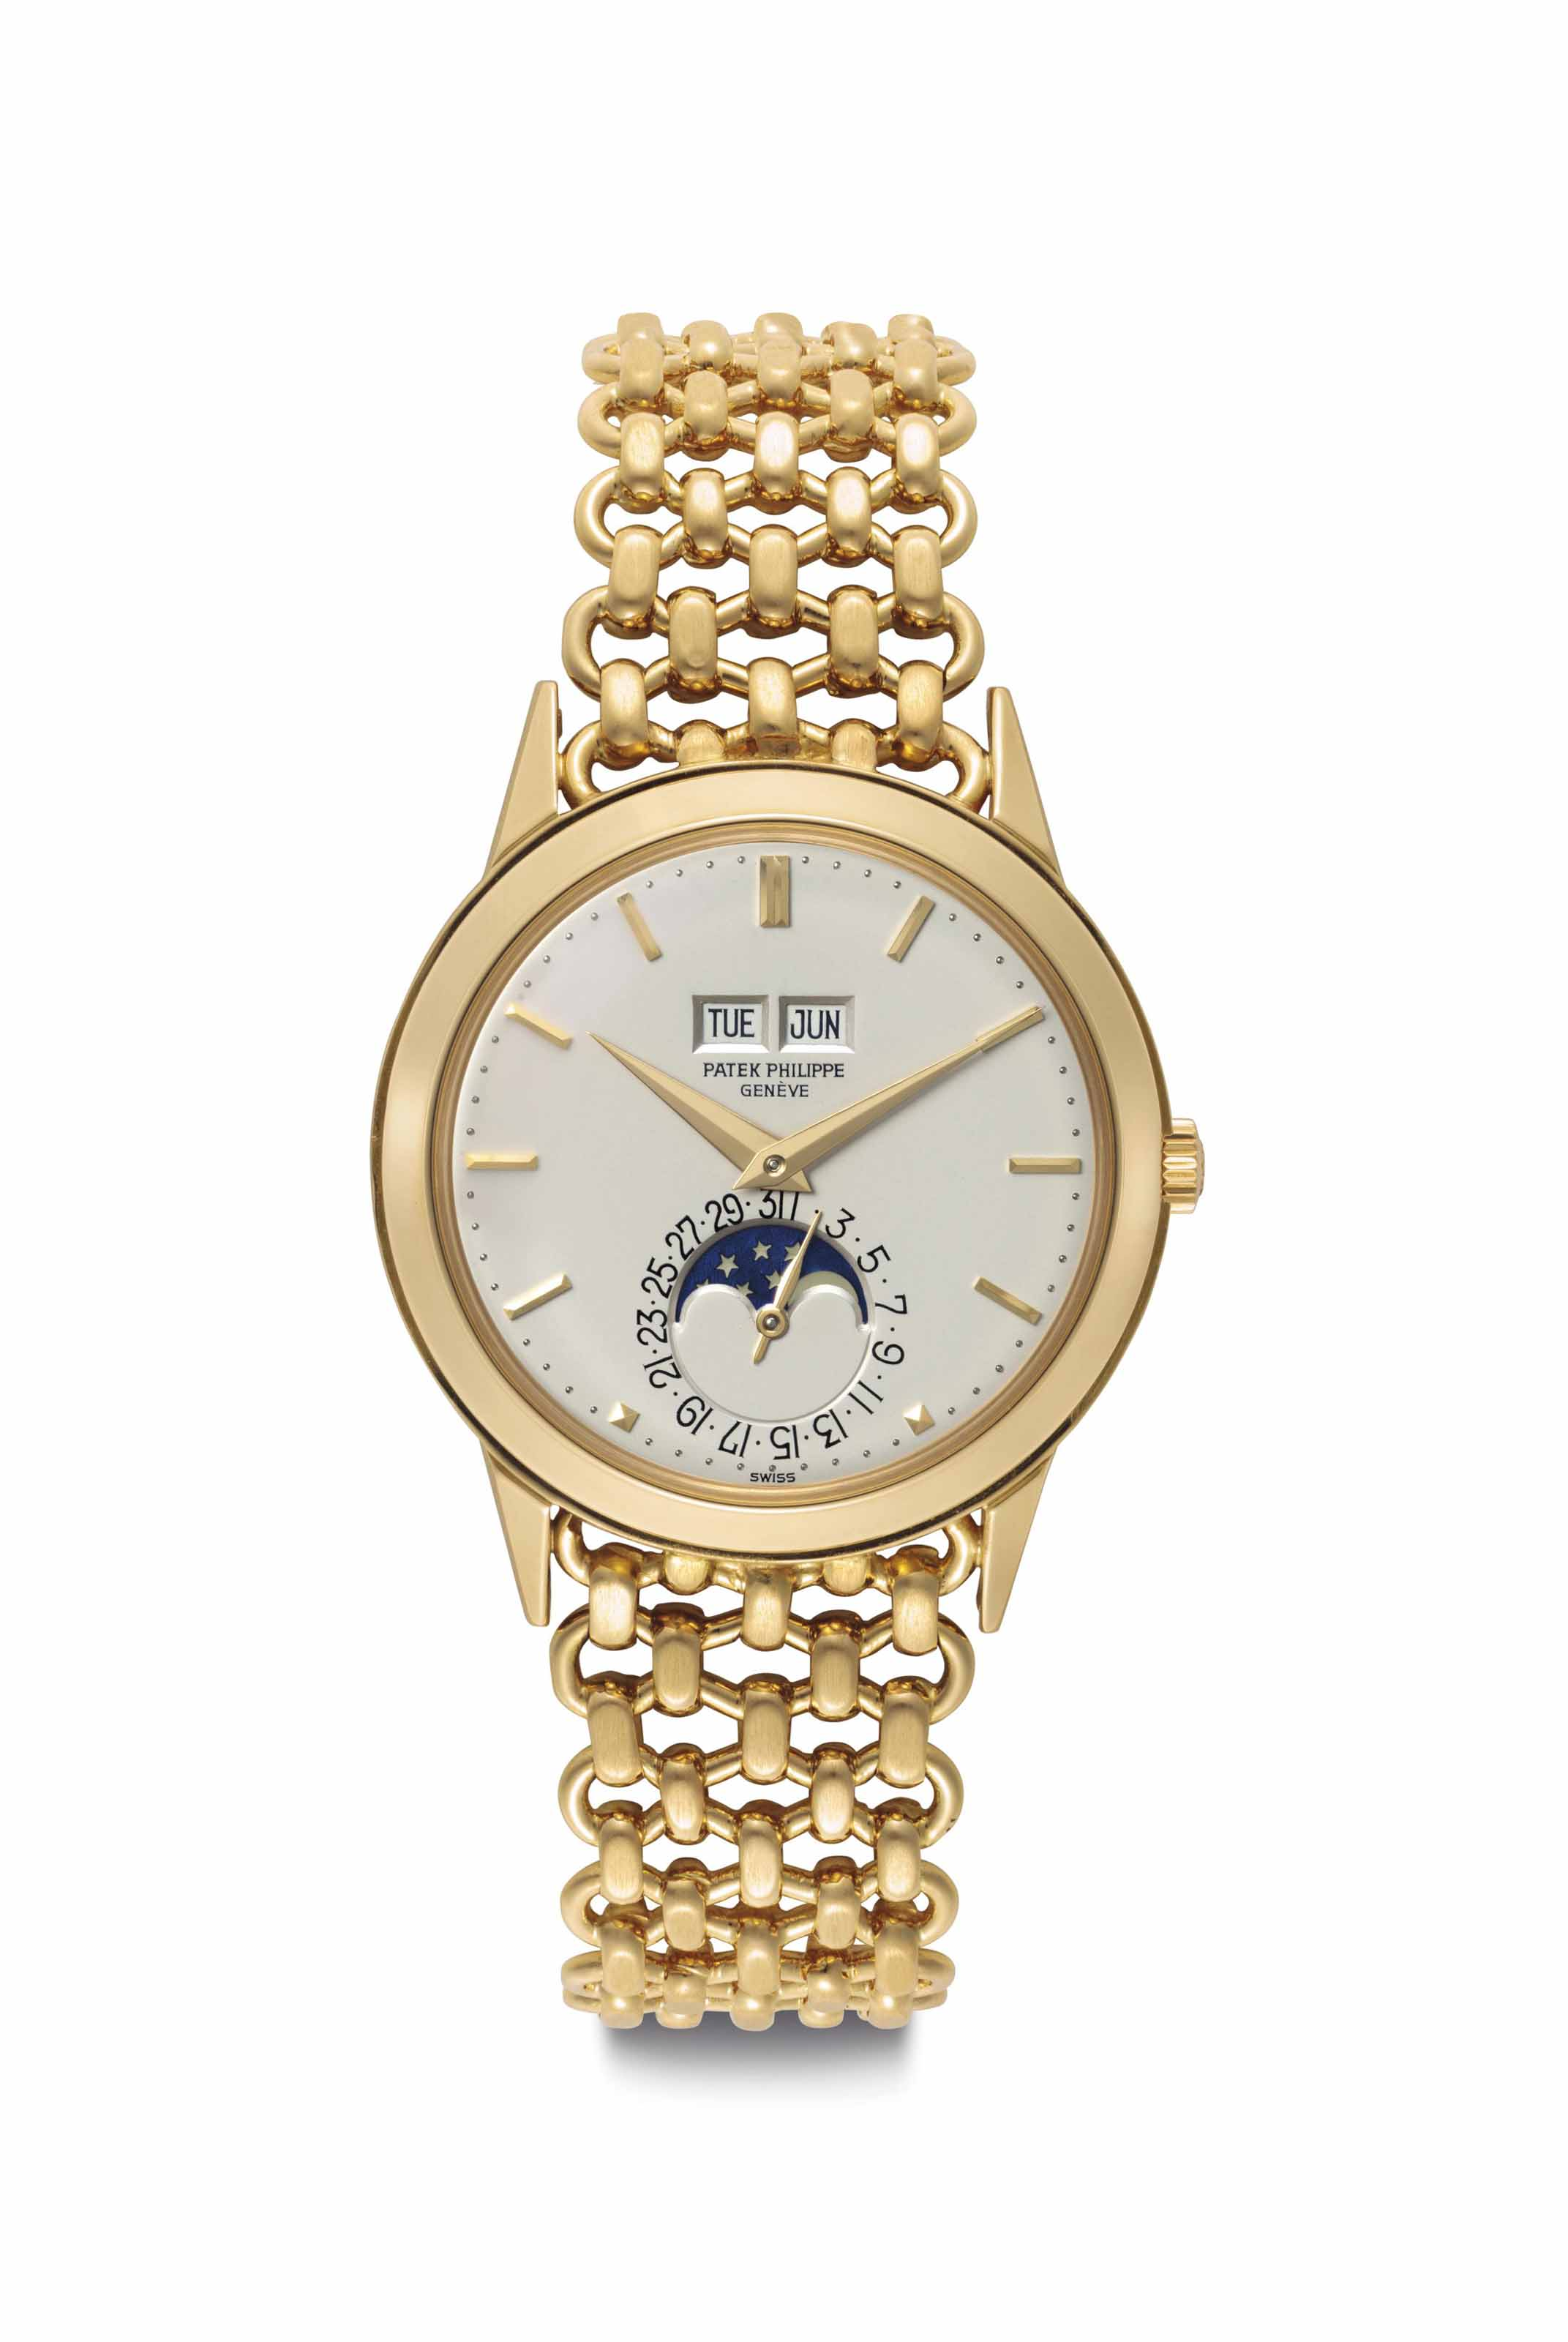 Patek Philippe. An Extremely Fine and Rare 18k Gold Automatic Perpetual Calendar Wristwatch with Moon Phases and Bracelet